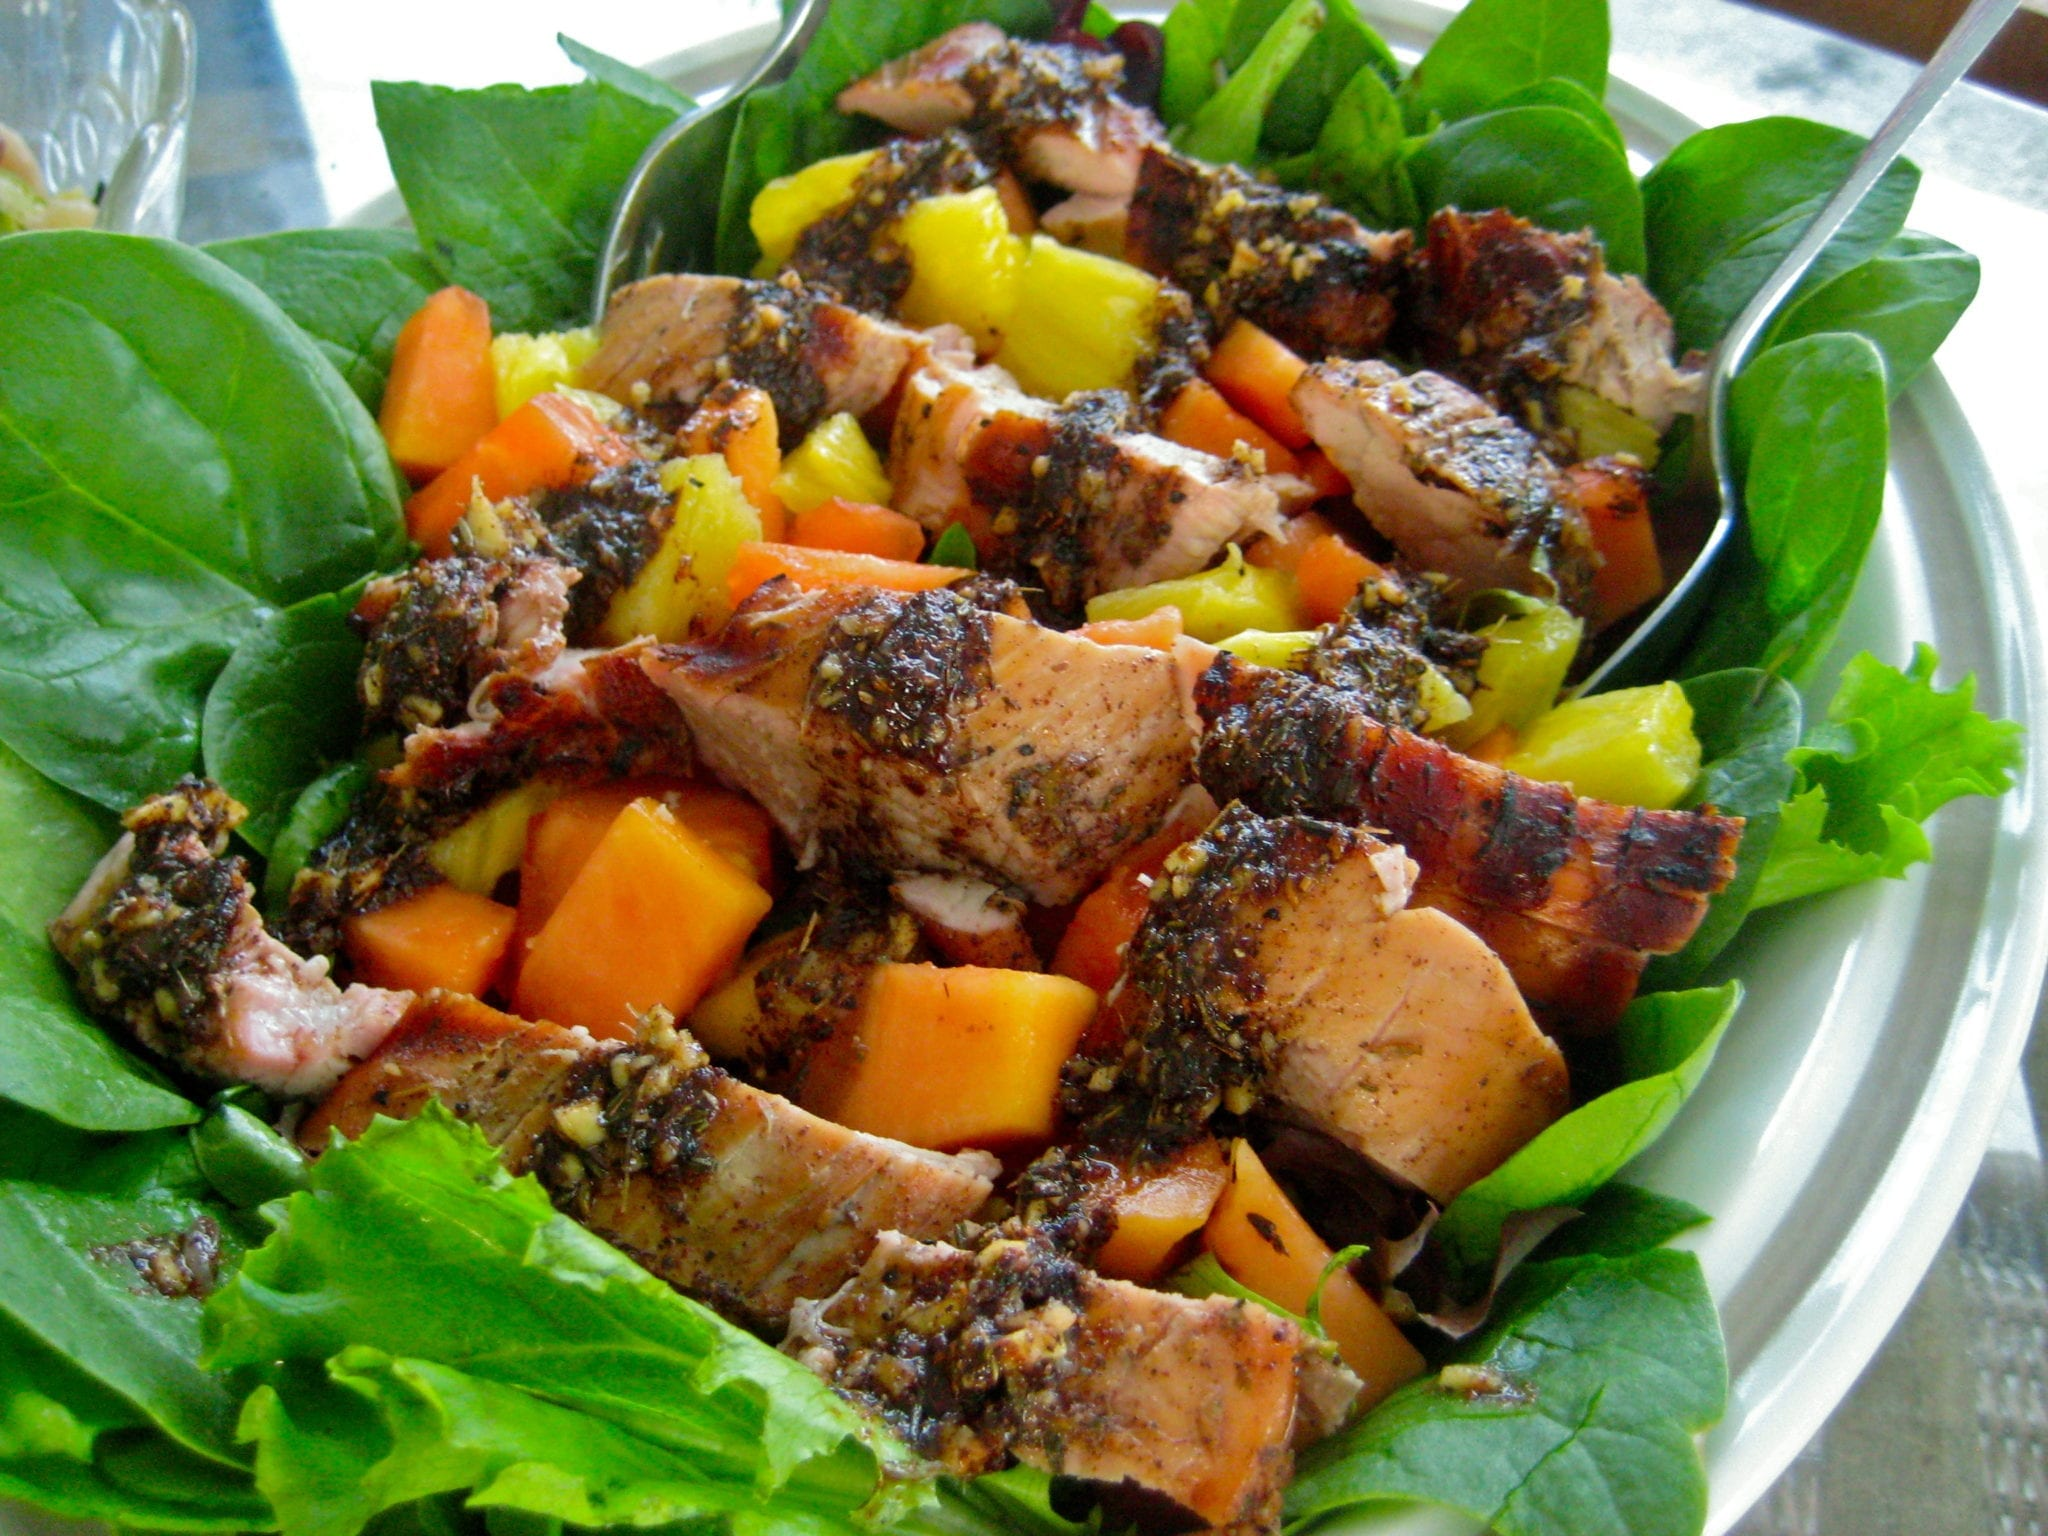 Photo authentic jamaica cuisine for Authentic jamaican cuisine